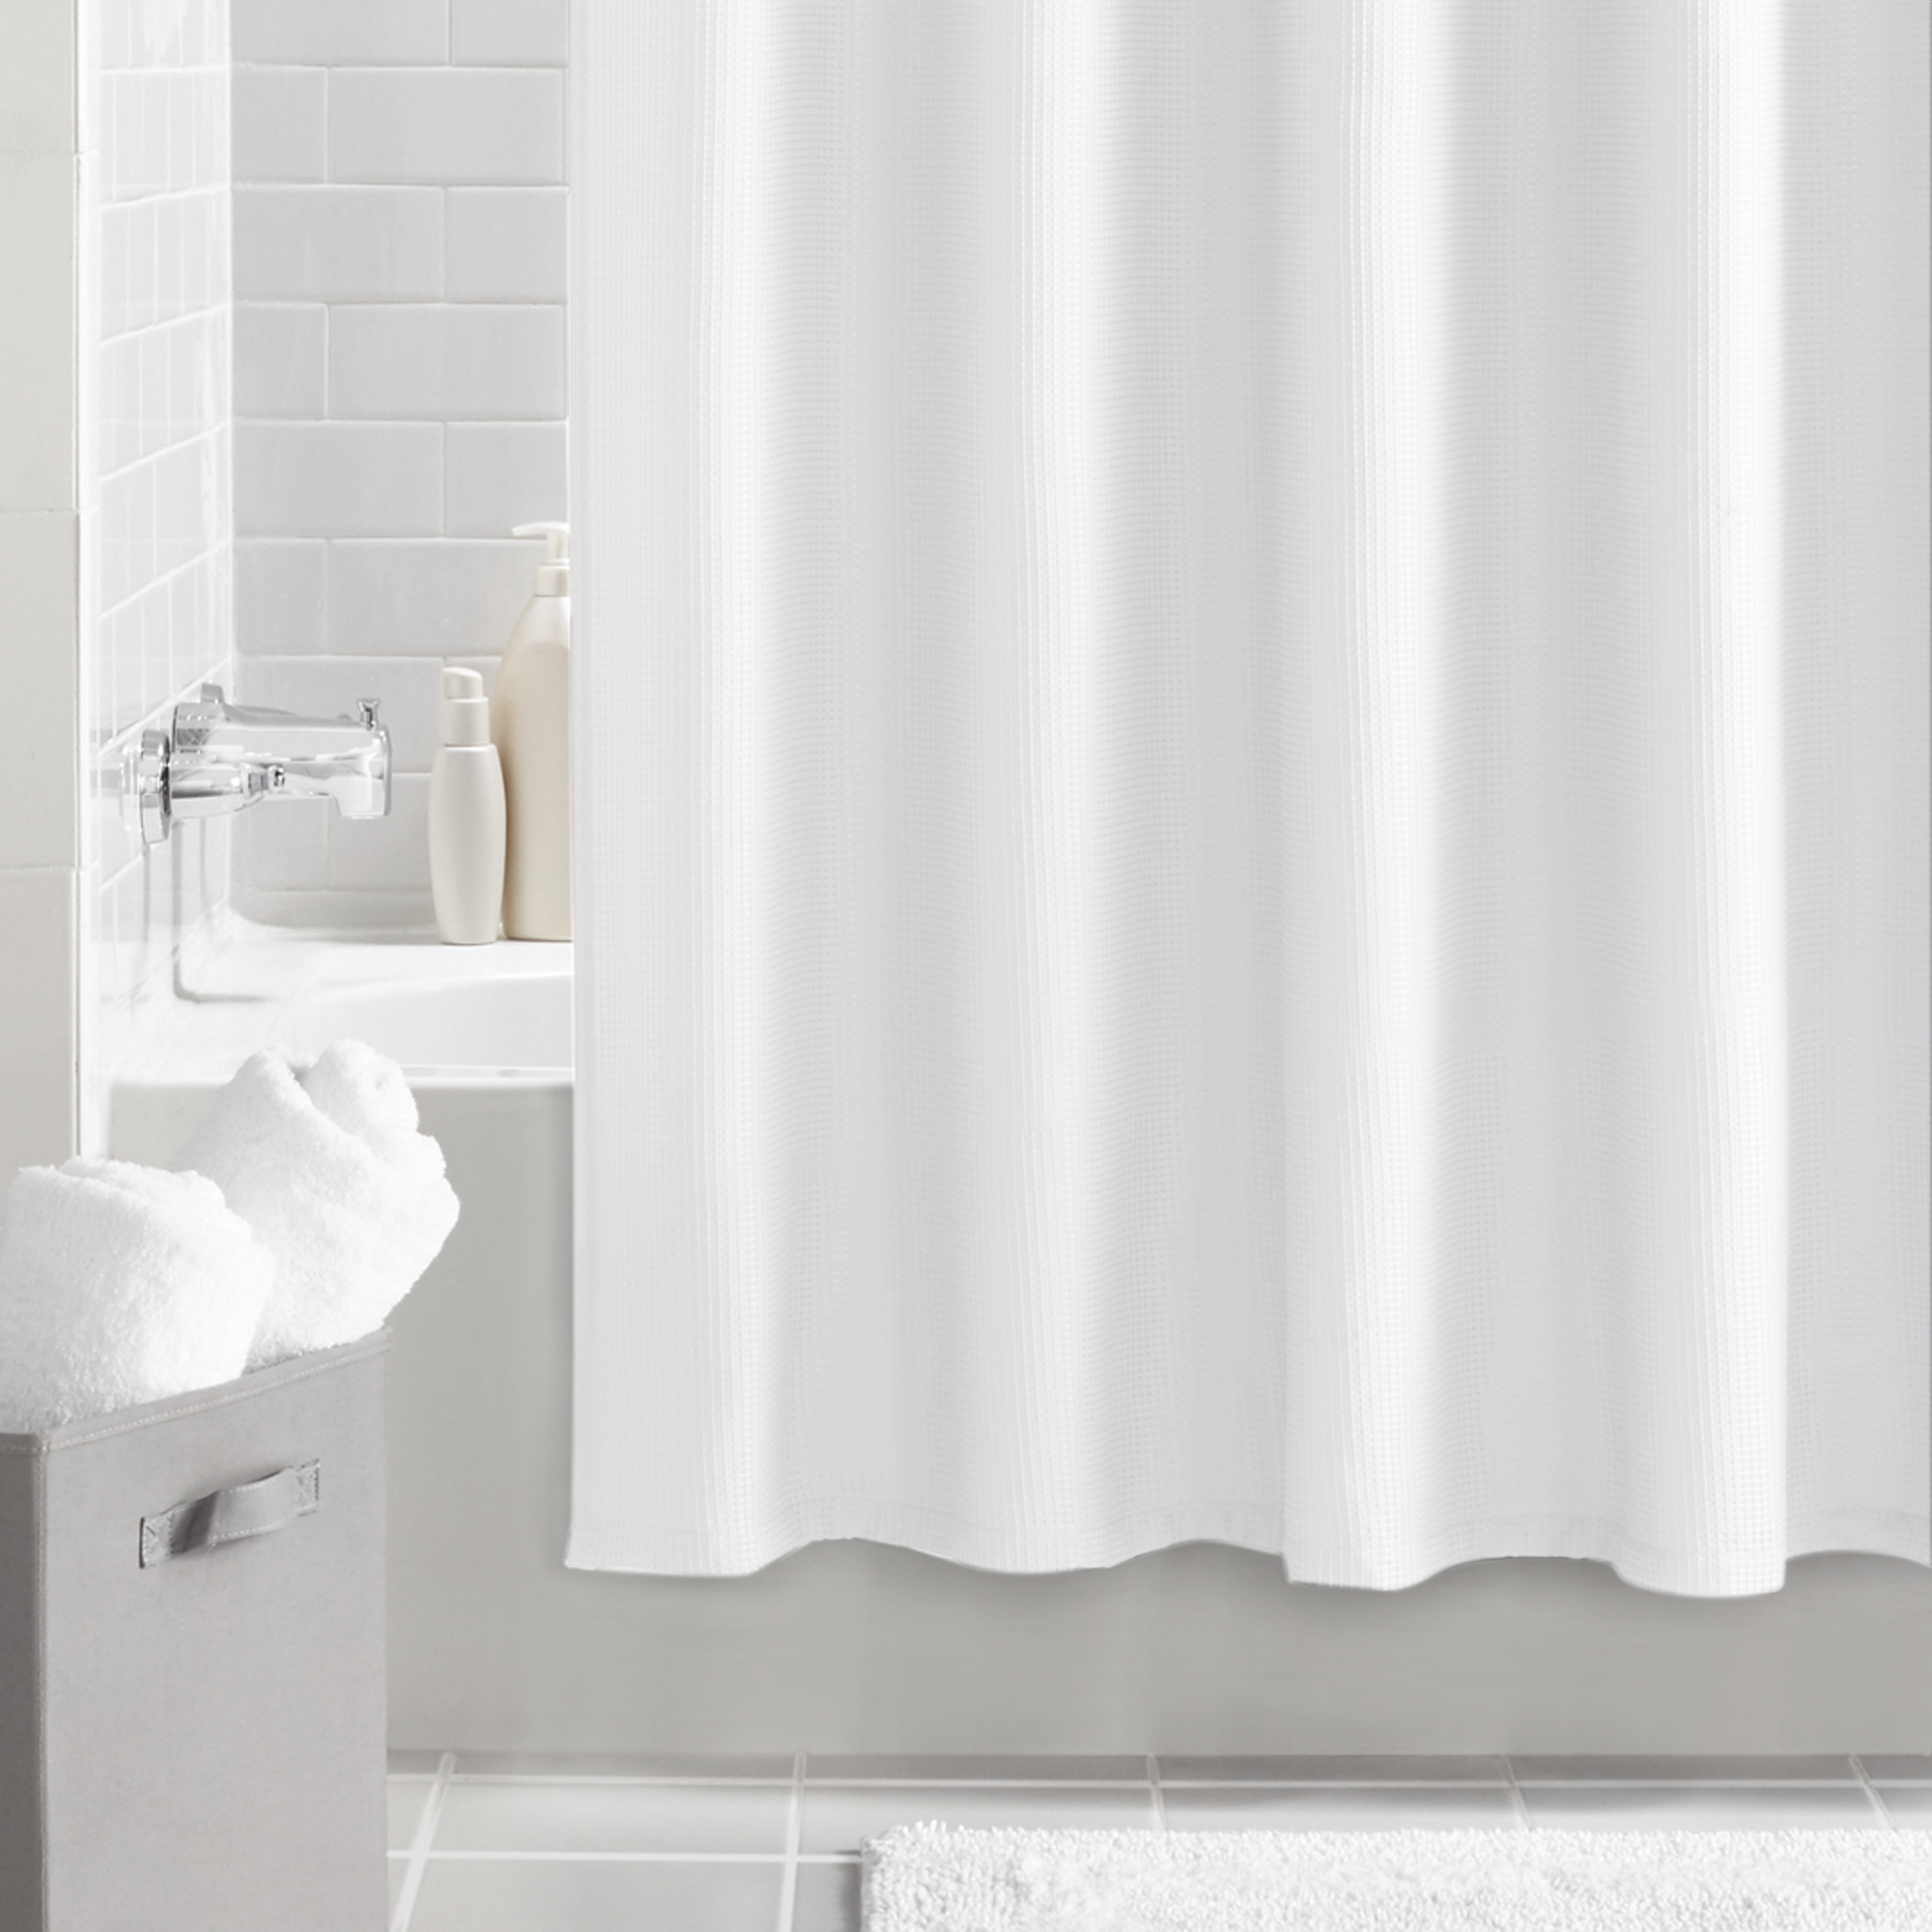 mainstays waffle textured fabric shower curtain solid white 70 x 72